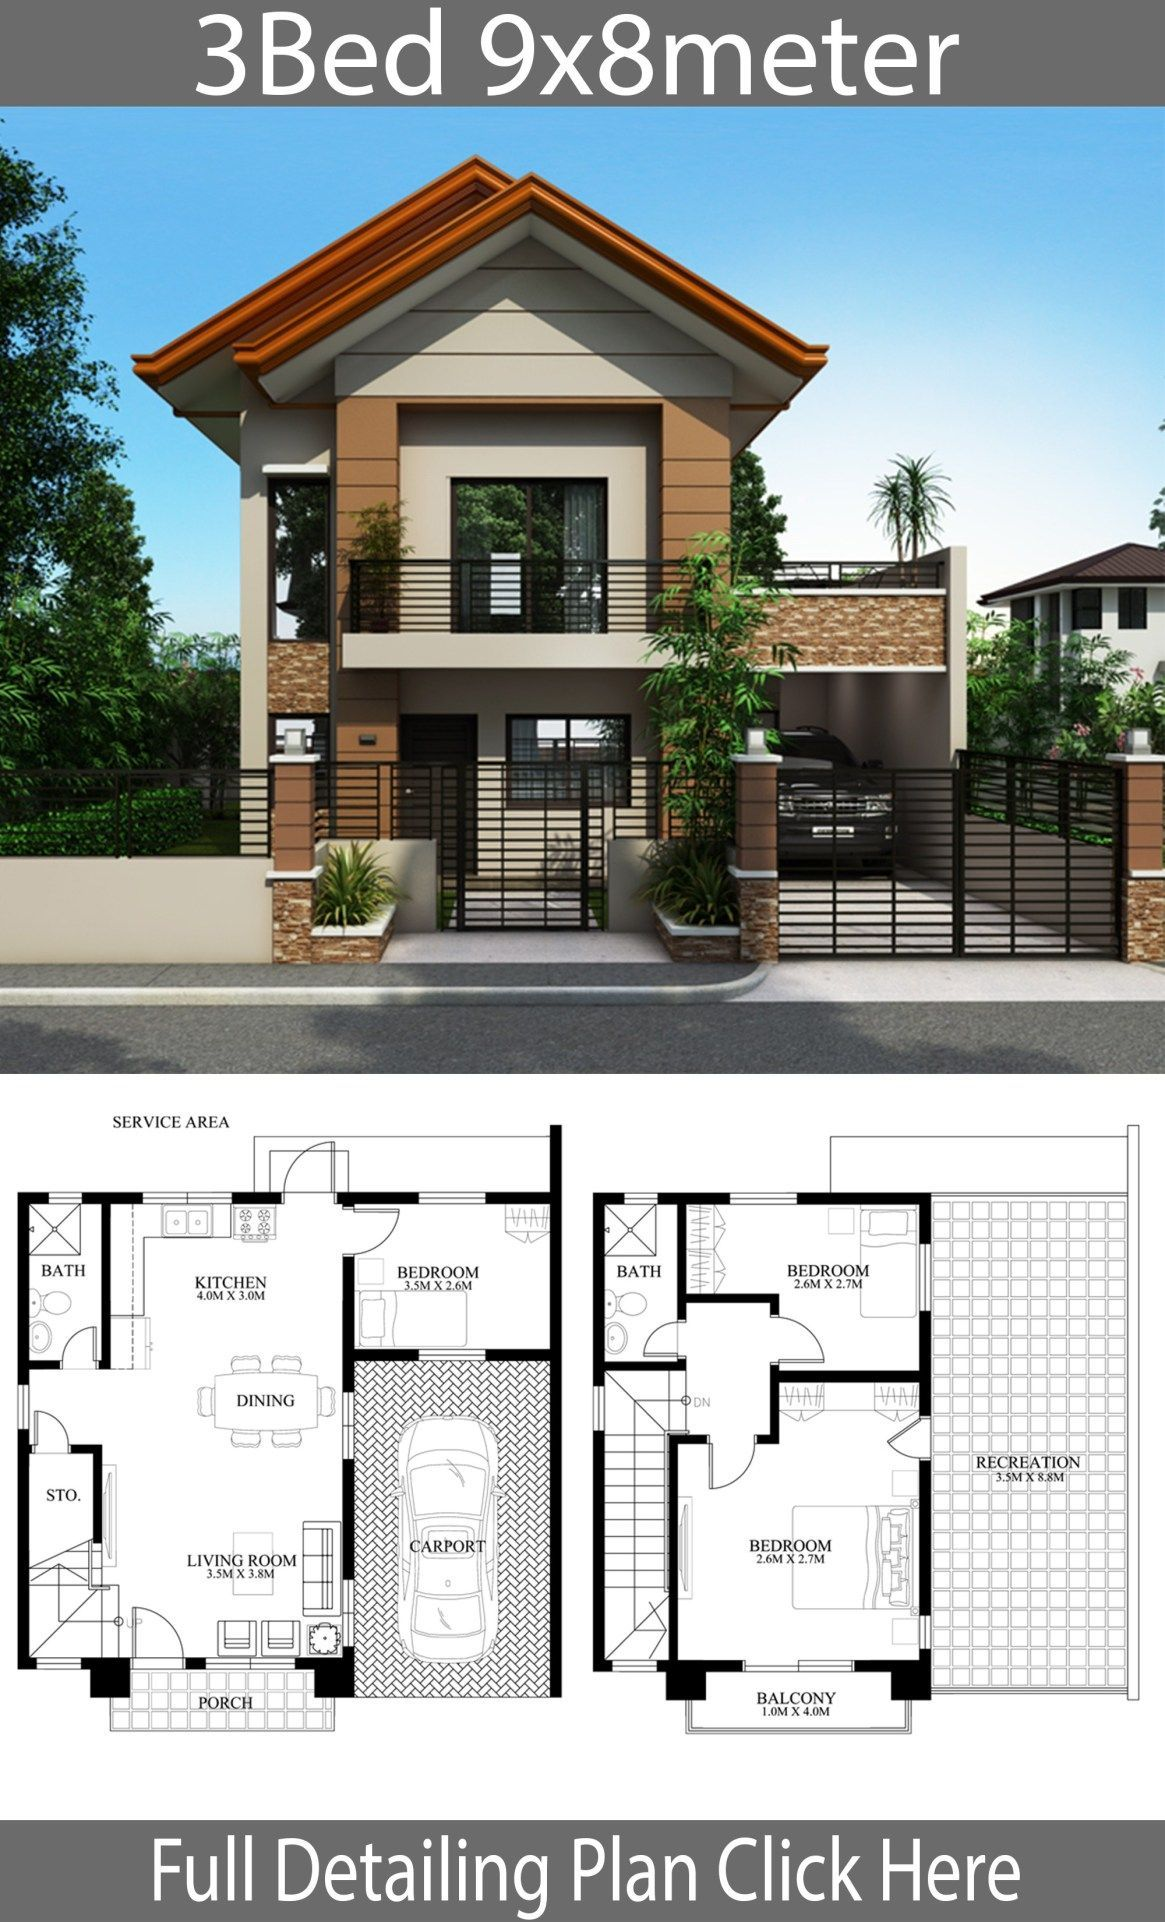 2 Storey House Design And Floor Plan Philippines In 2020 Philippines House Design Modern House Floor Plans 2 Storey House Design